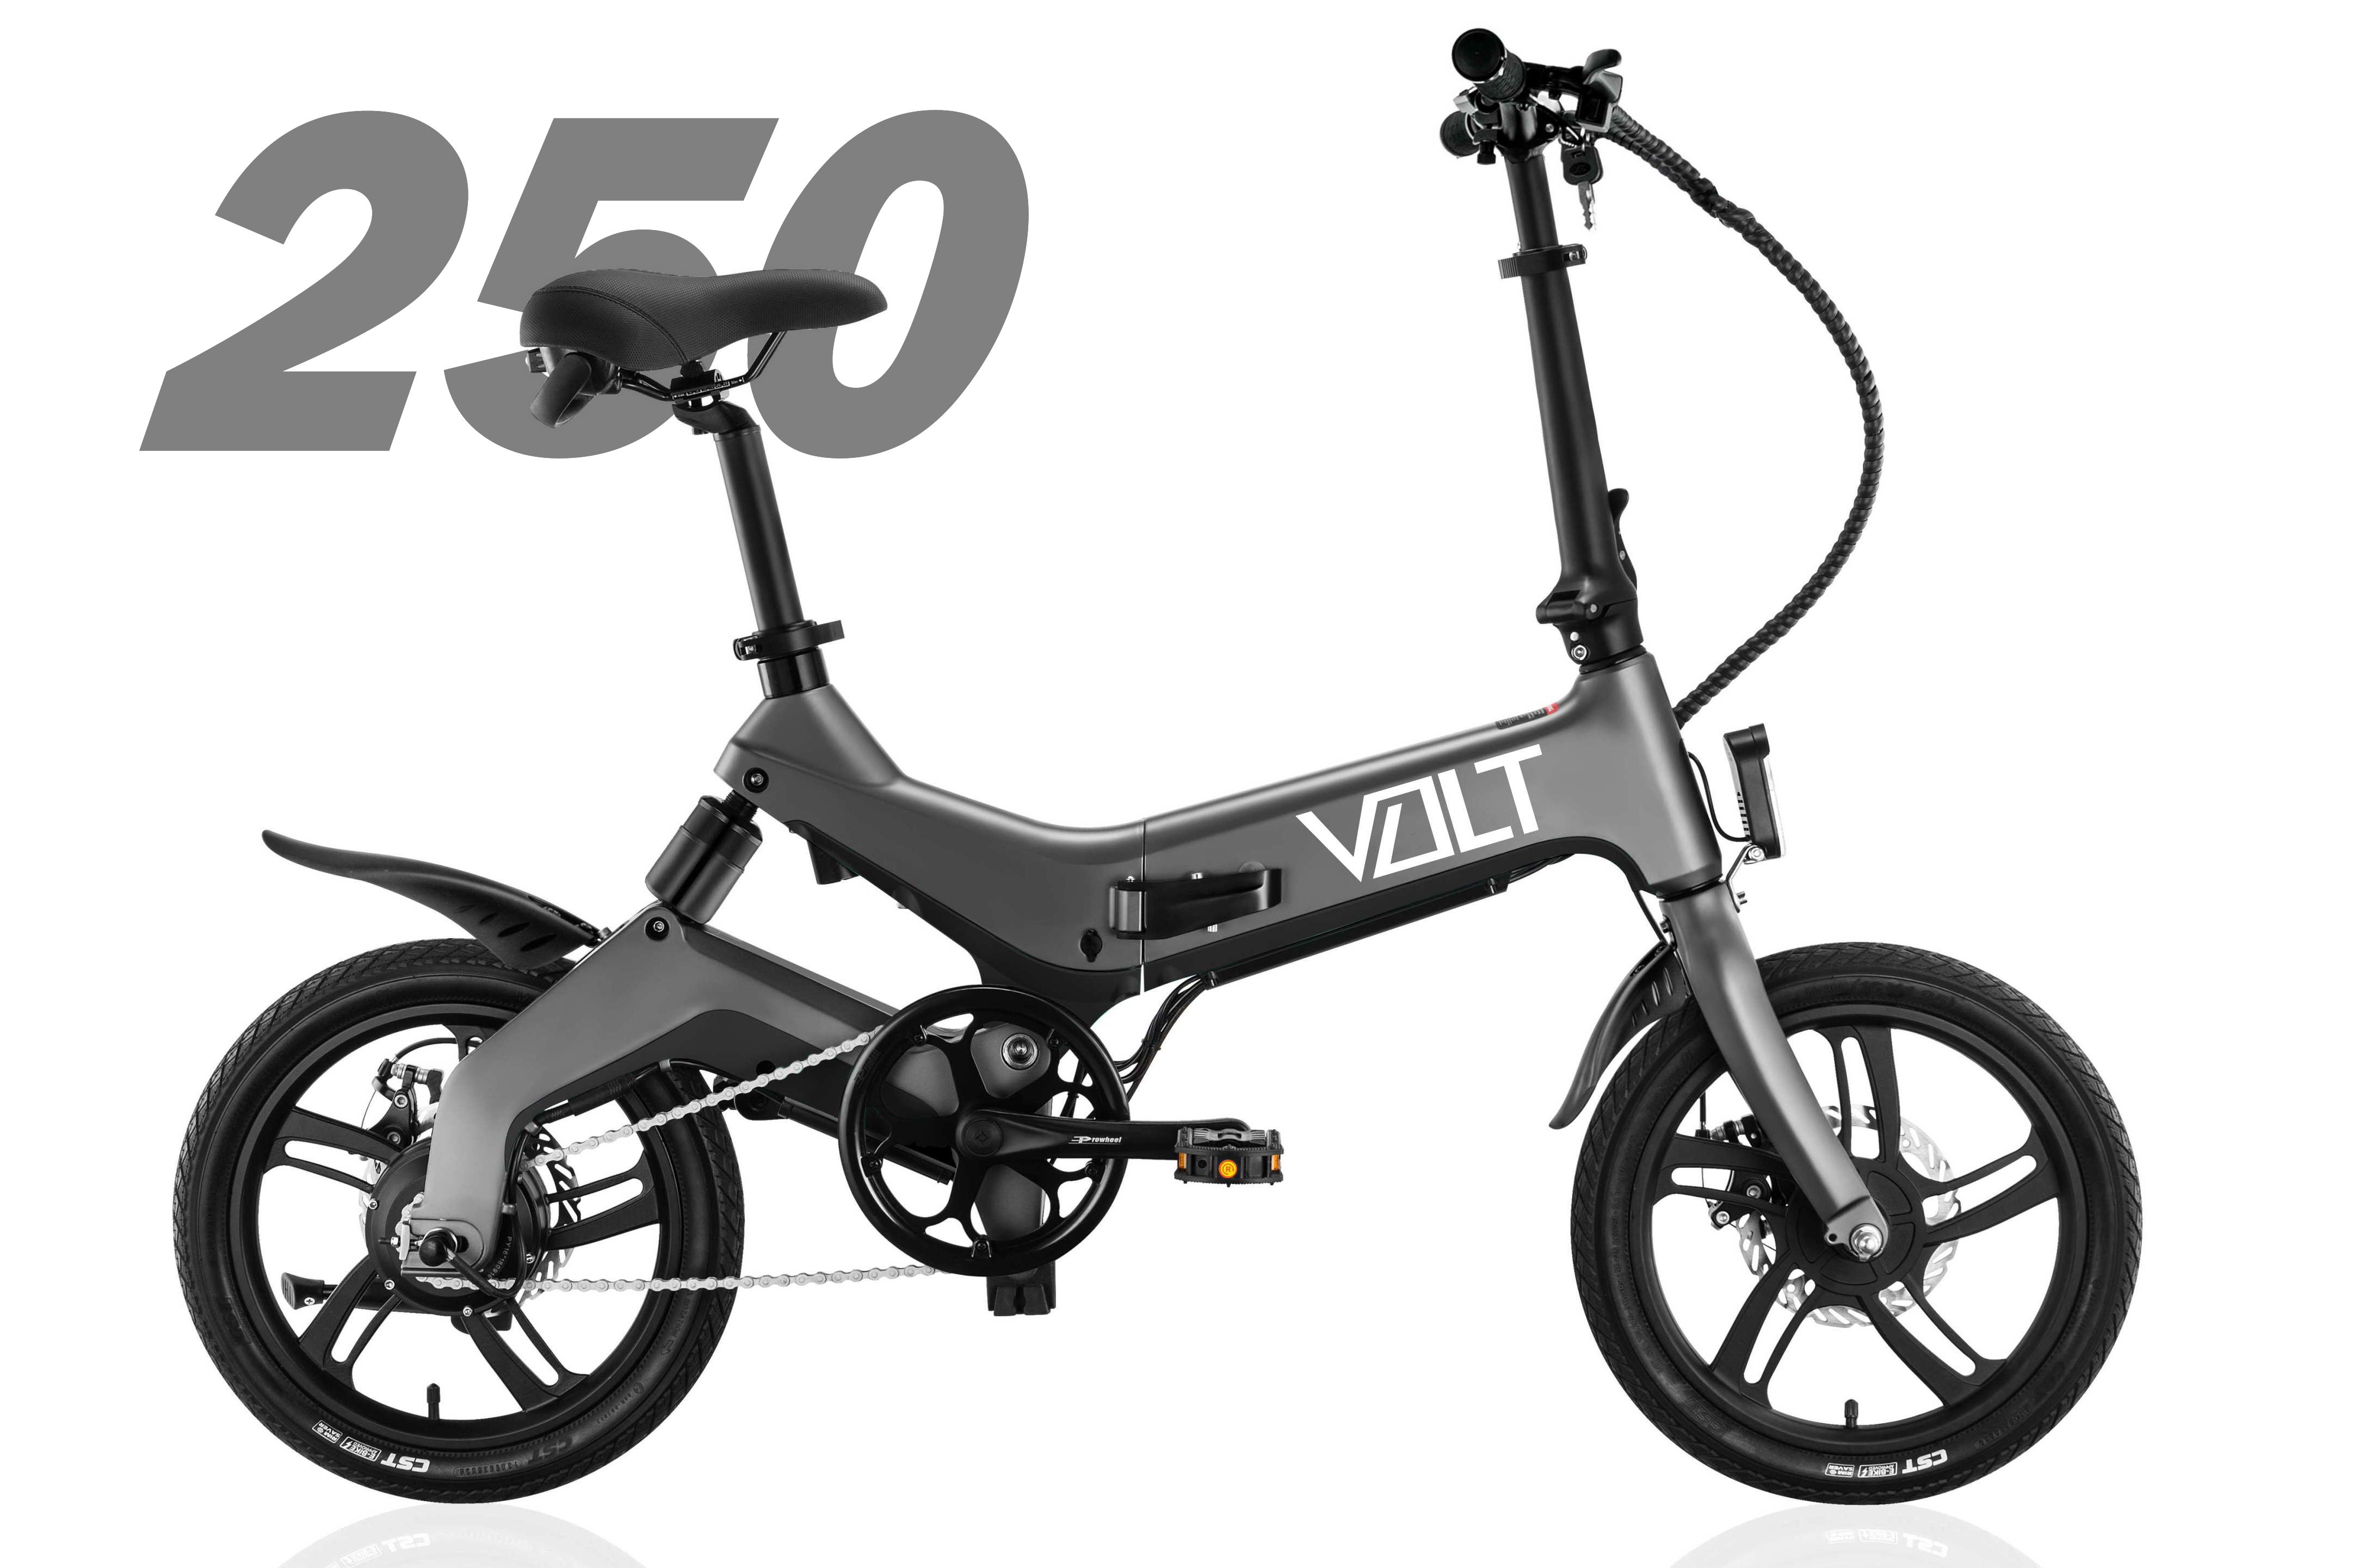 Promotional graphic of the VOLT 250 and 500 series ebikes